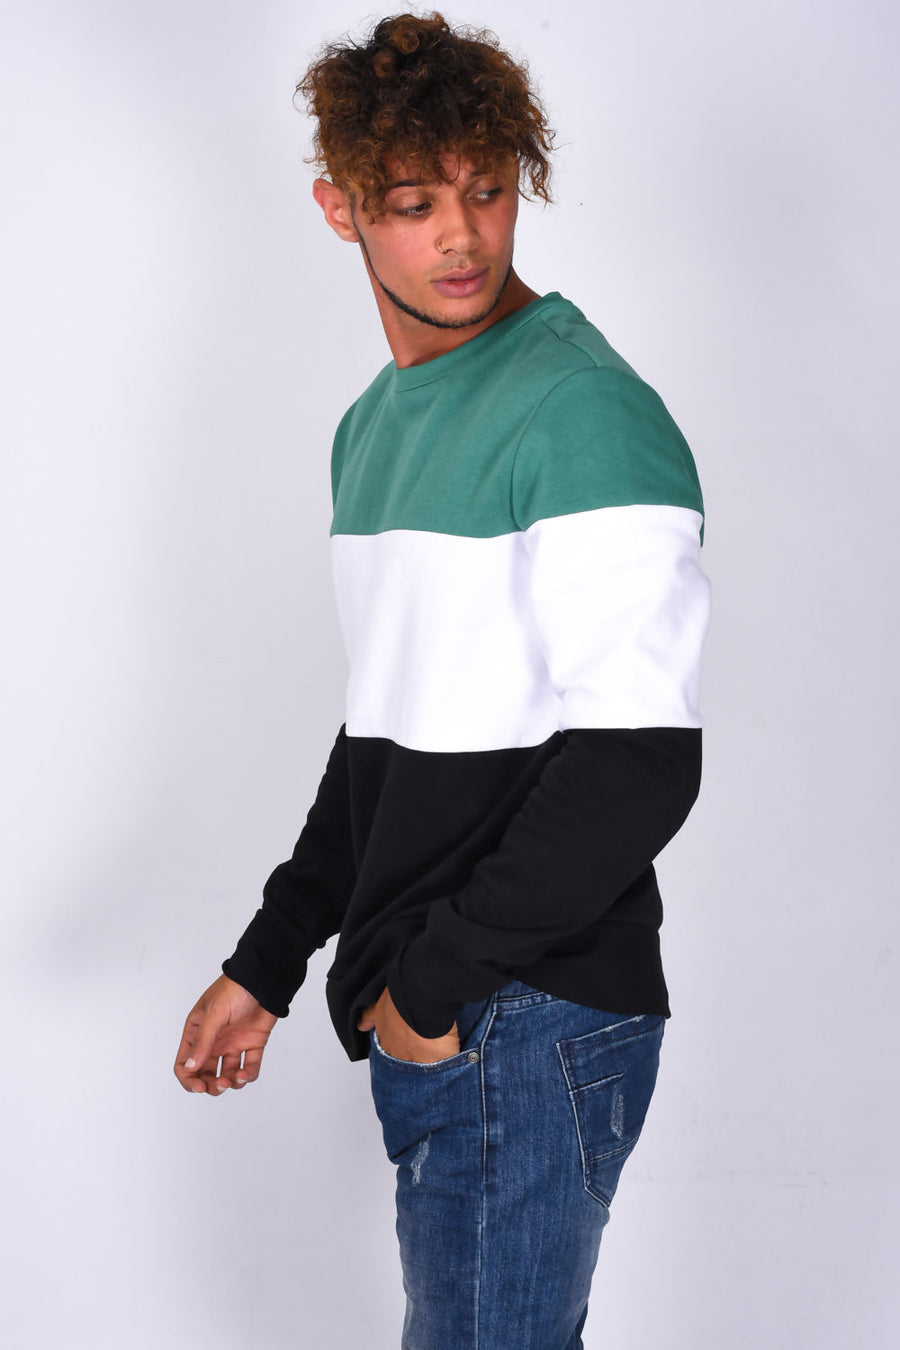 Crewneck Sweatshirt, Colourblock, grün gestreift